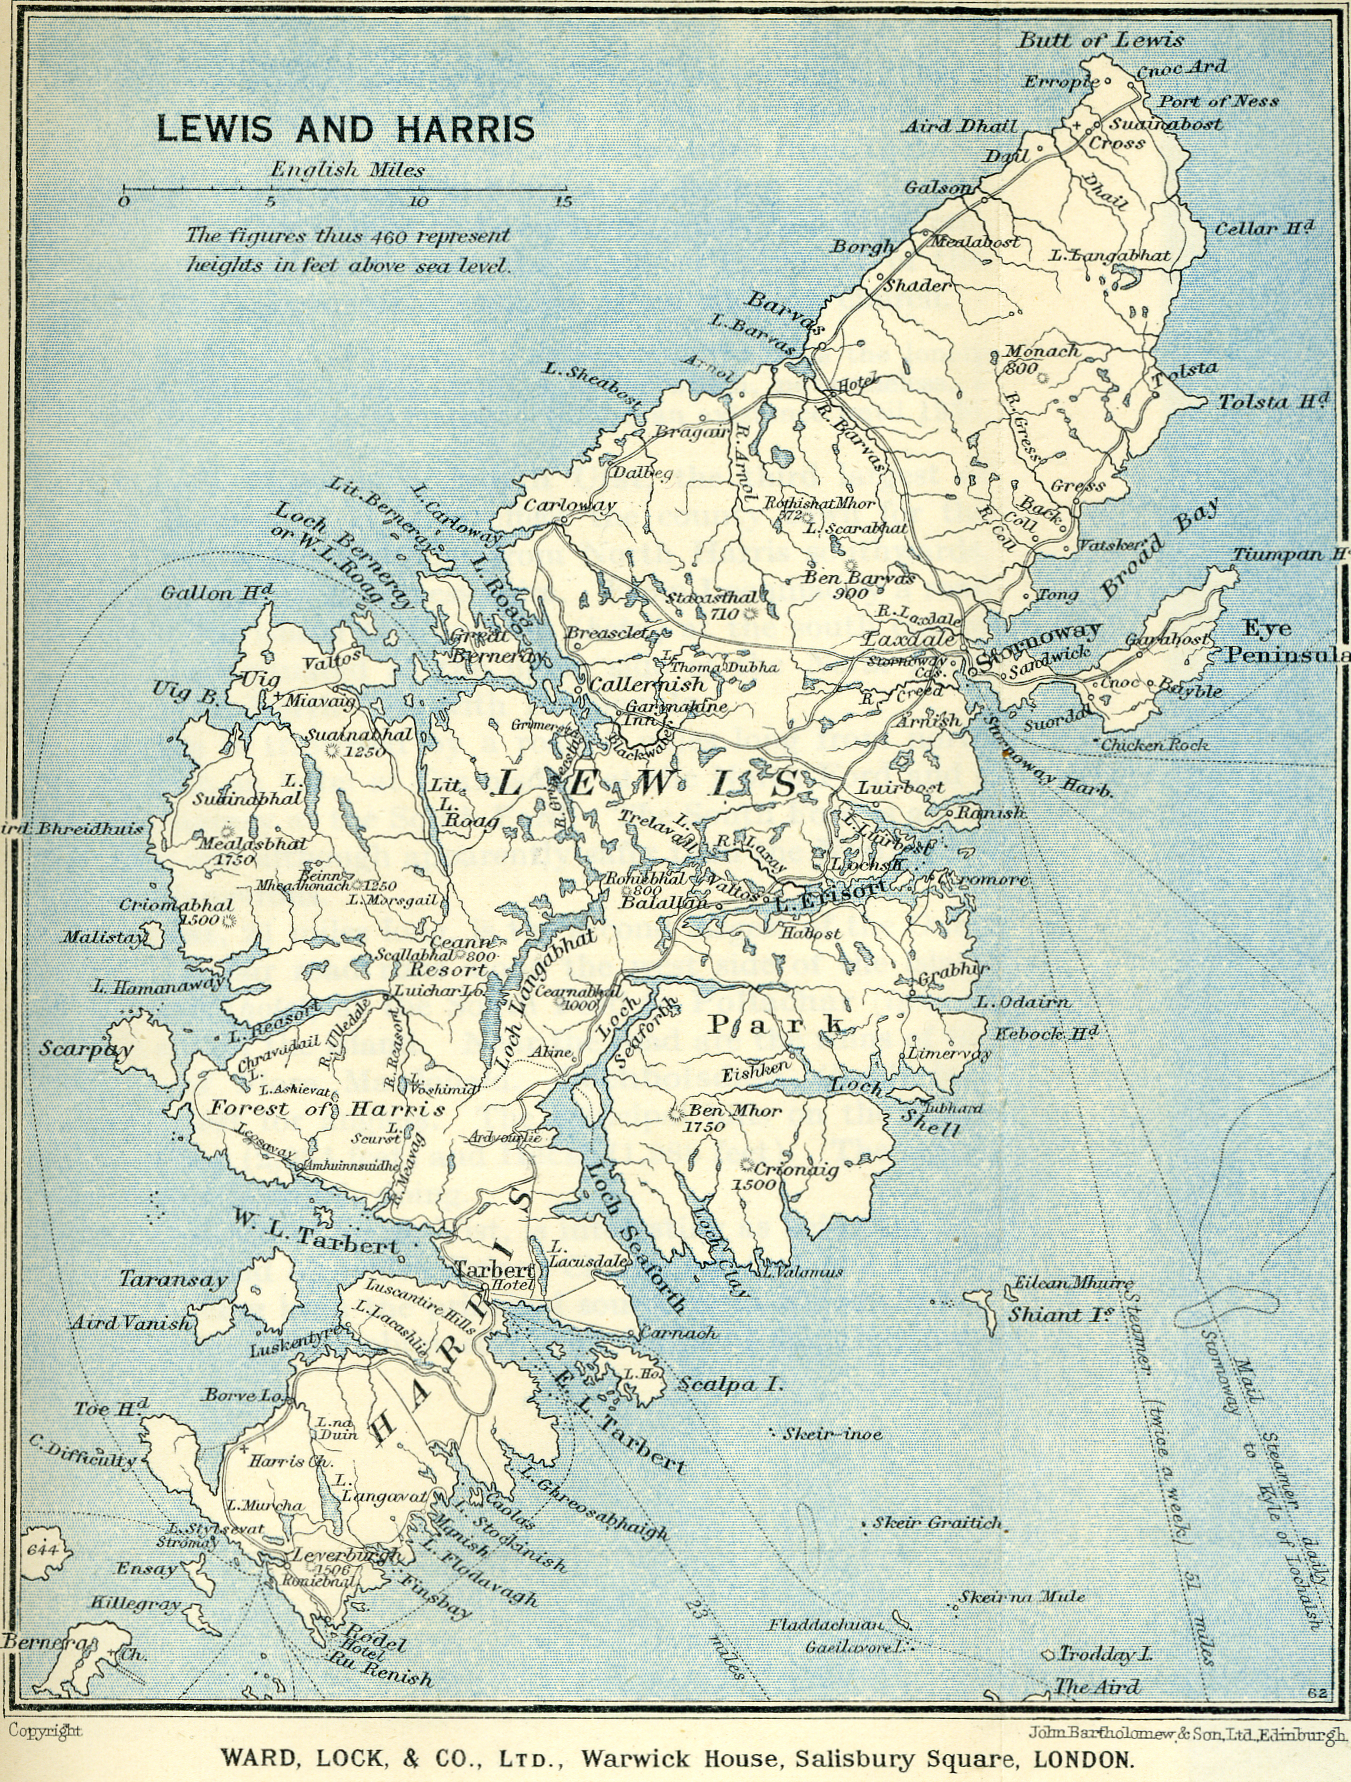 The Northern Highlands and the Western Isles Sights